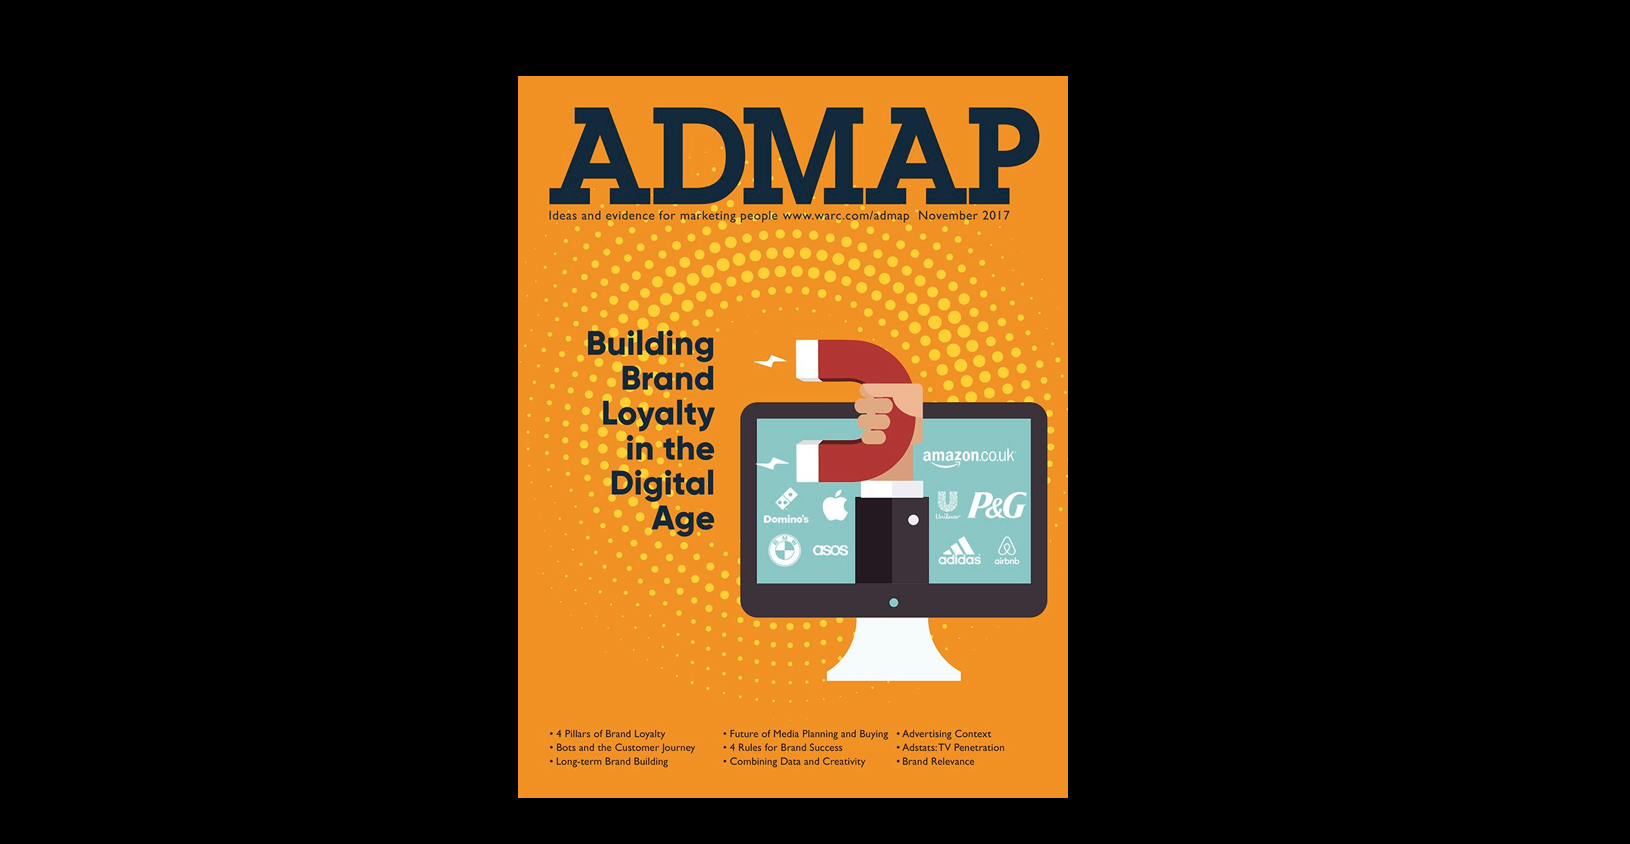 Rethinking loyalty in the age of digital - Published in ADMAP, November 2017 issue: Building Brand Loyalty